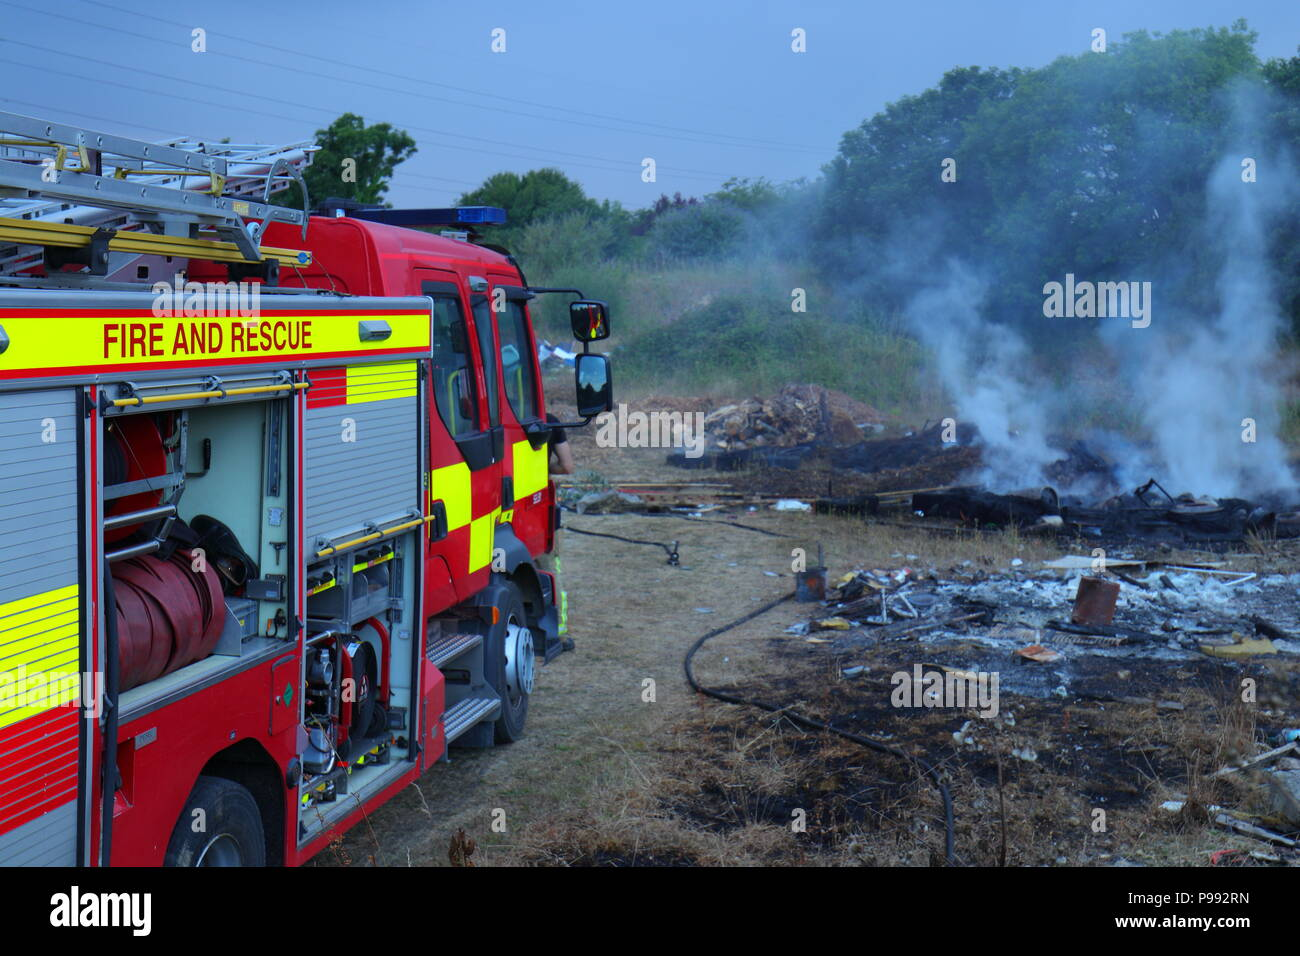 Fire crews from Selby, North Yorkshire put out a rubbish fire just off the A63 near Selby. - Stock Image